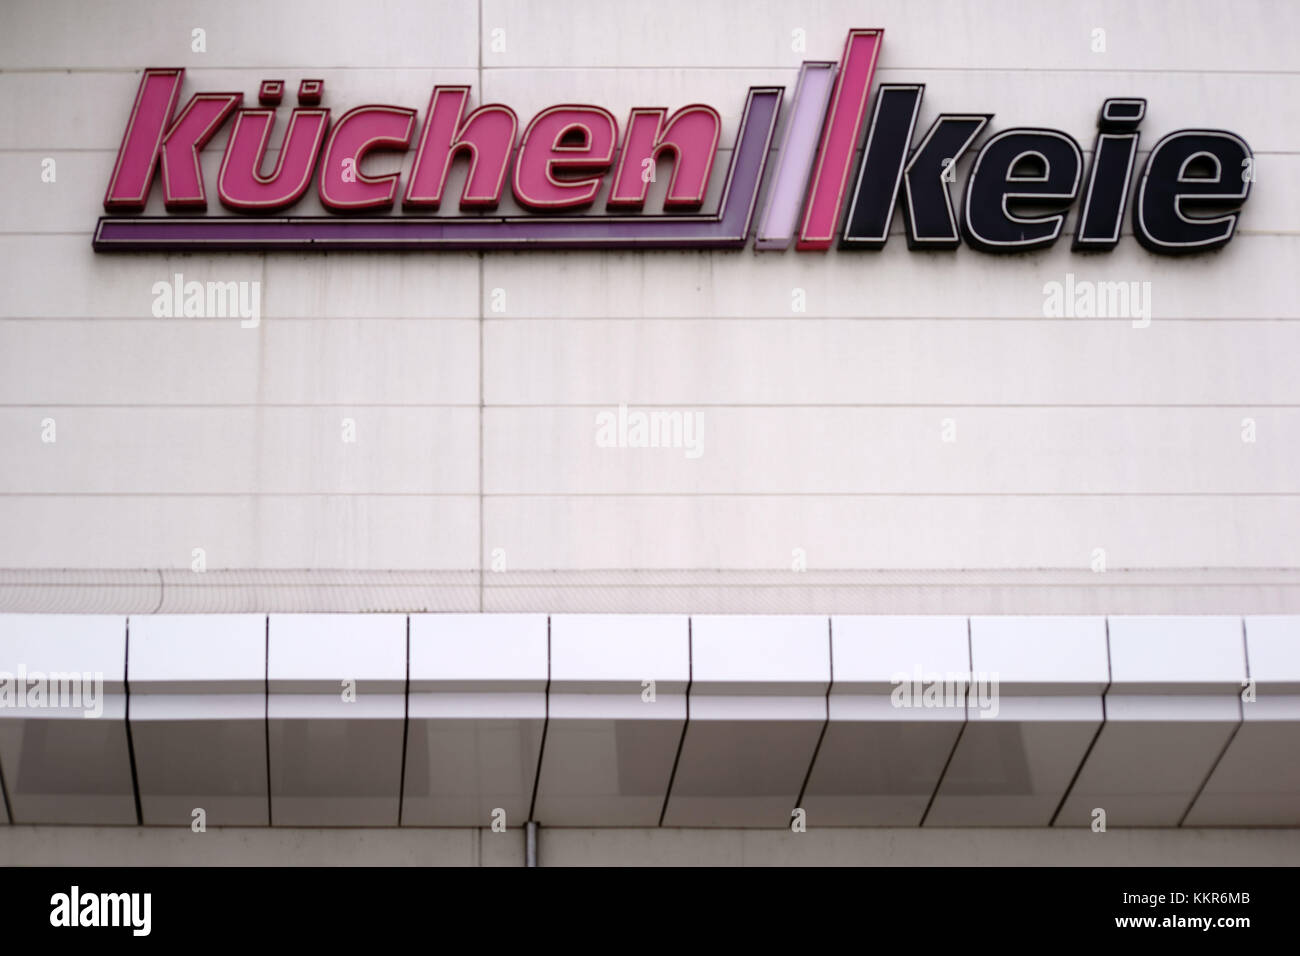 nameplate and logo of the furnishings market for kitchens Küchen Keie on the facade of a building - Stock Image